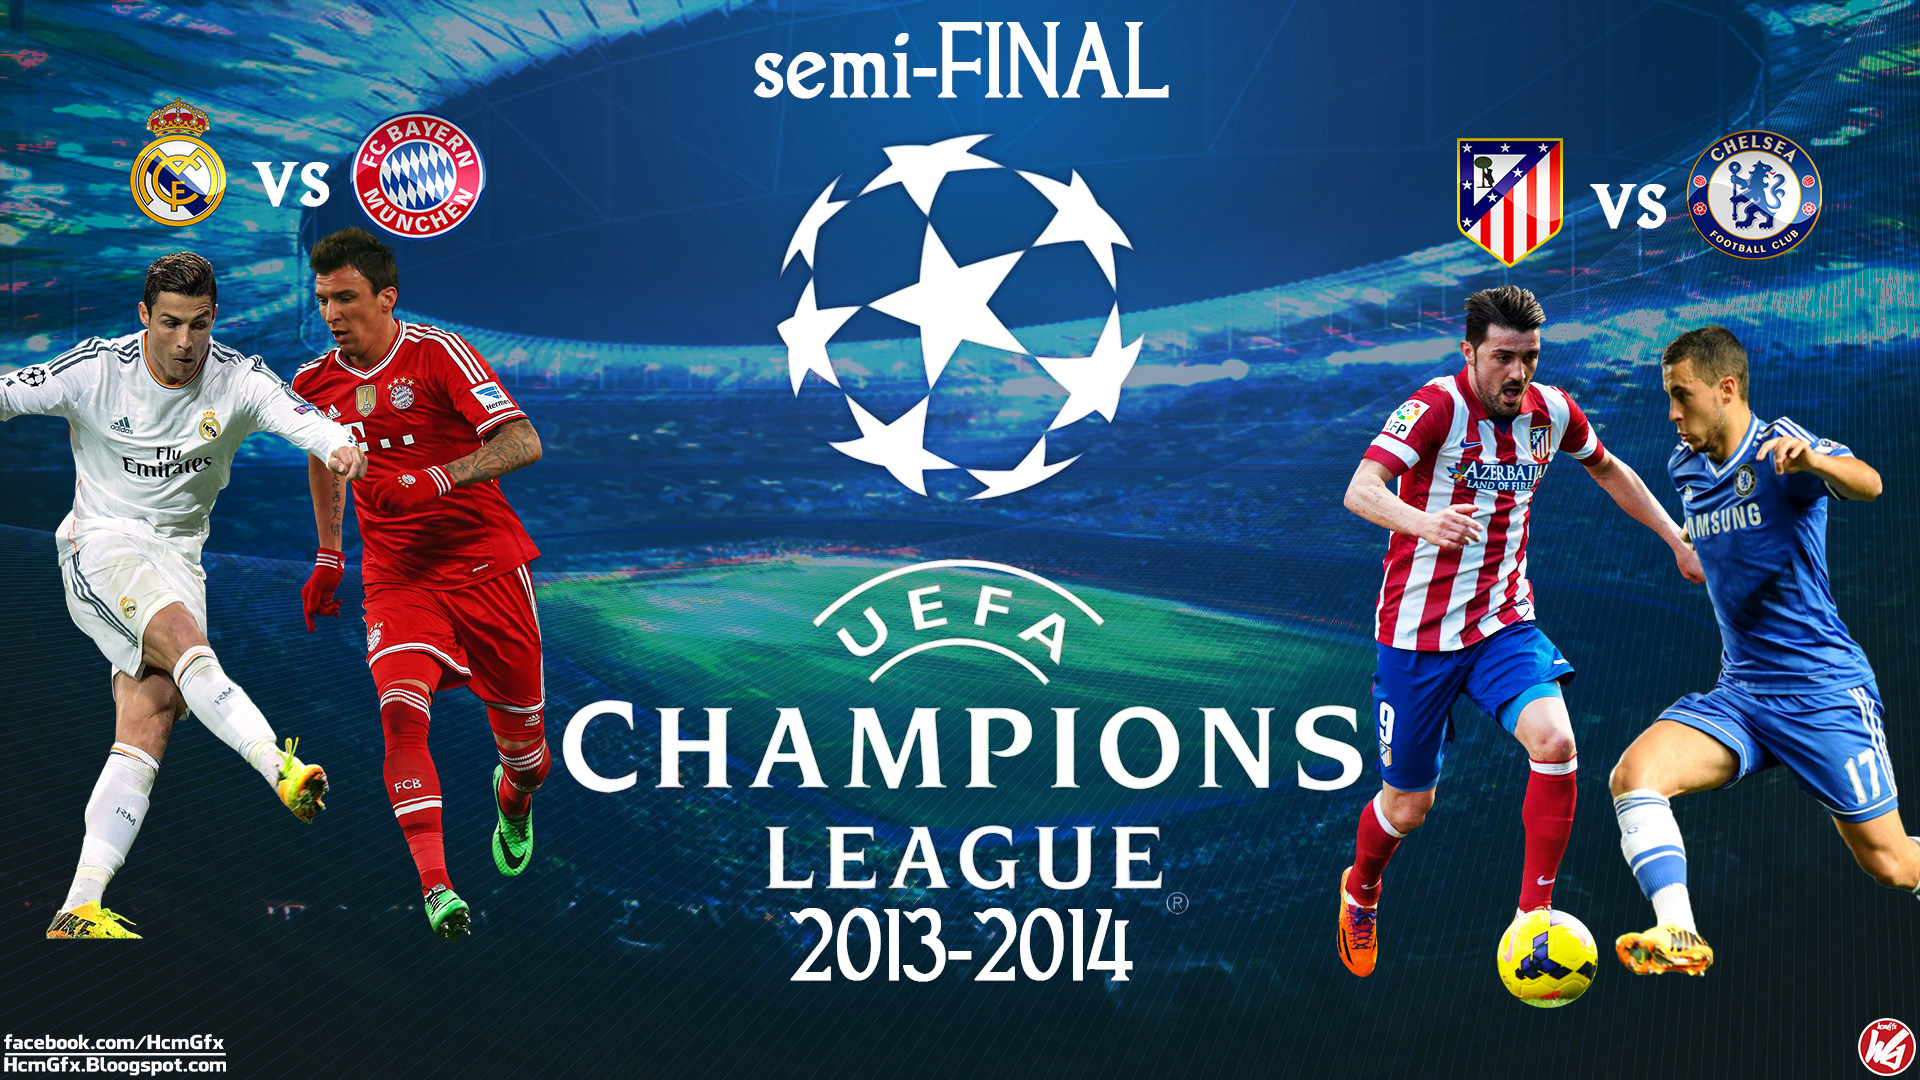 champions league semi